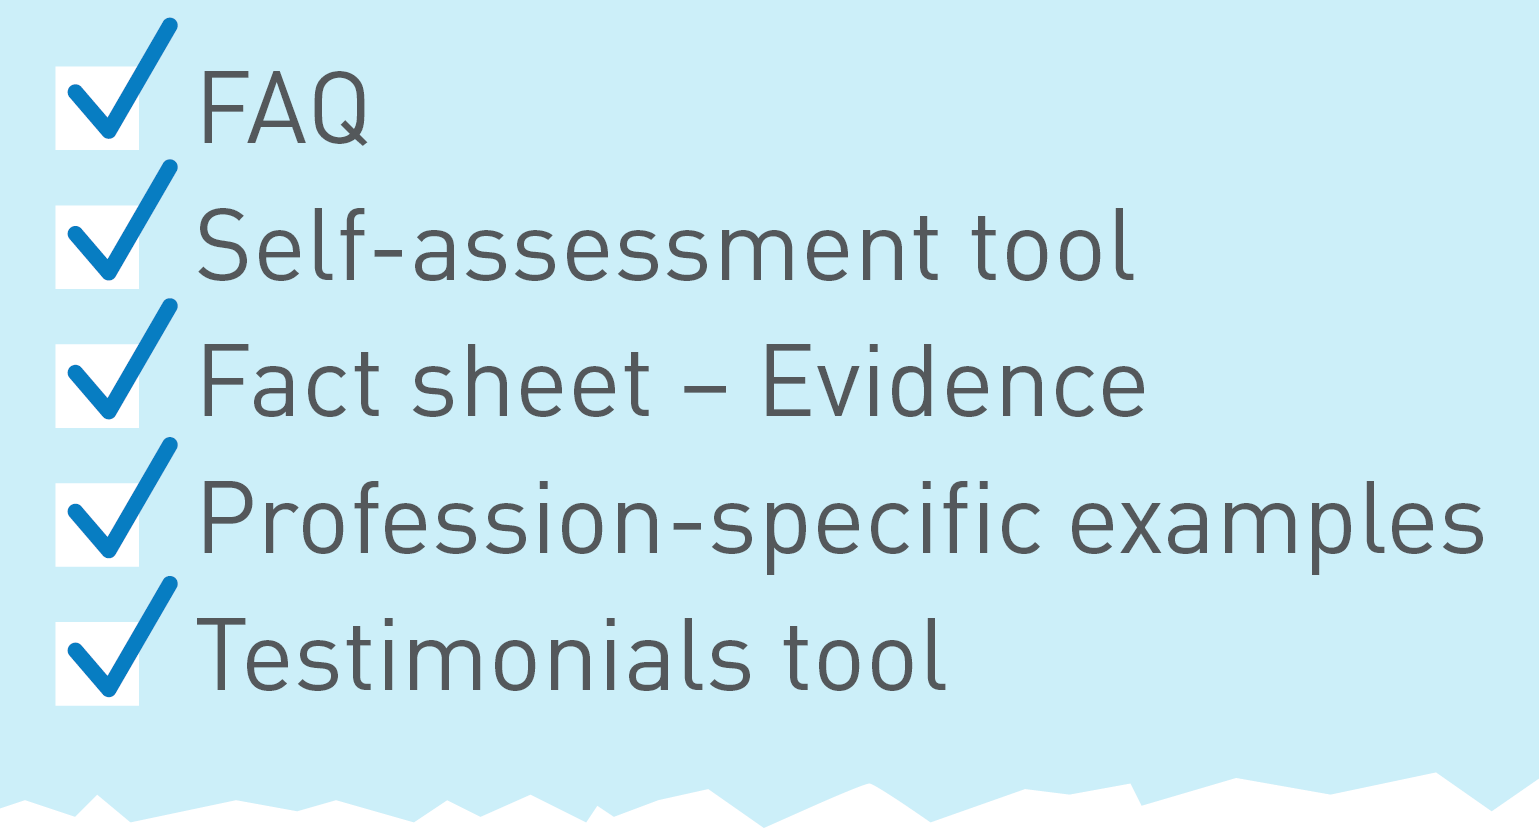 Checklist - FAQ - Self-assessment tool - Fact sheet evidence - Profession-specific examples - Testimonial tool